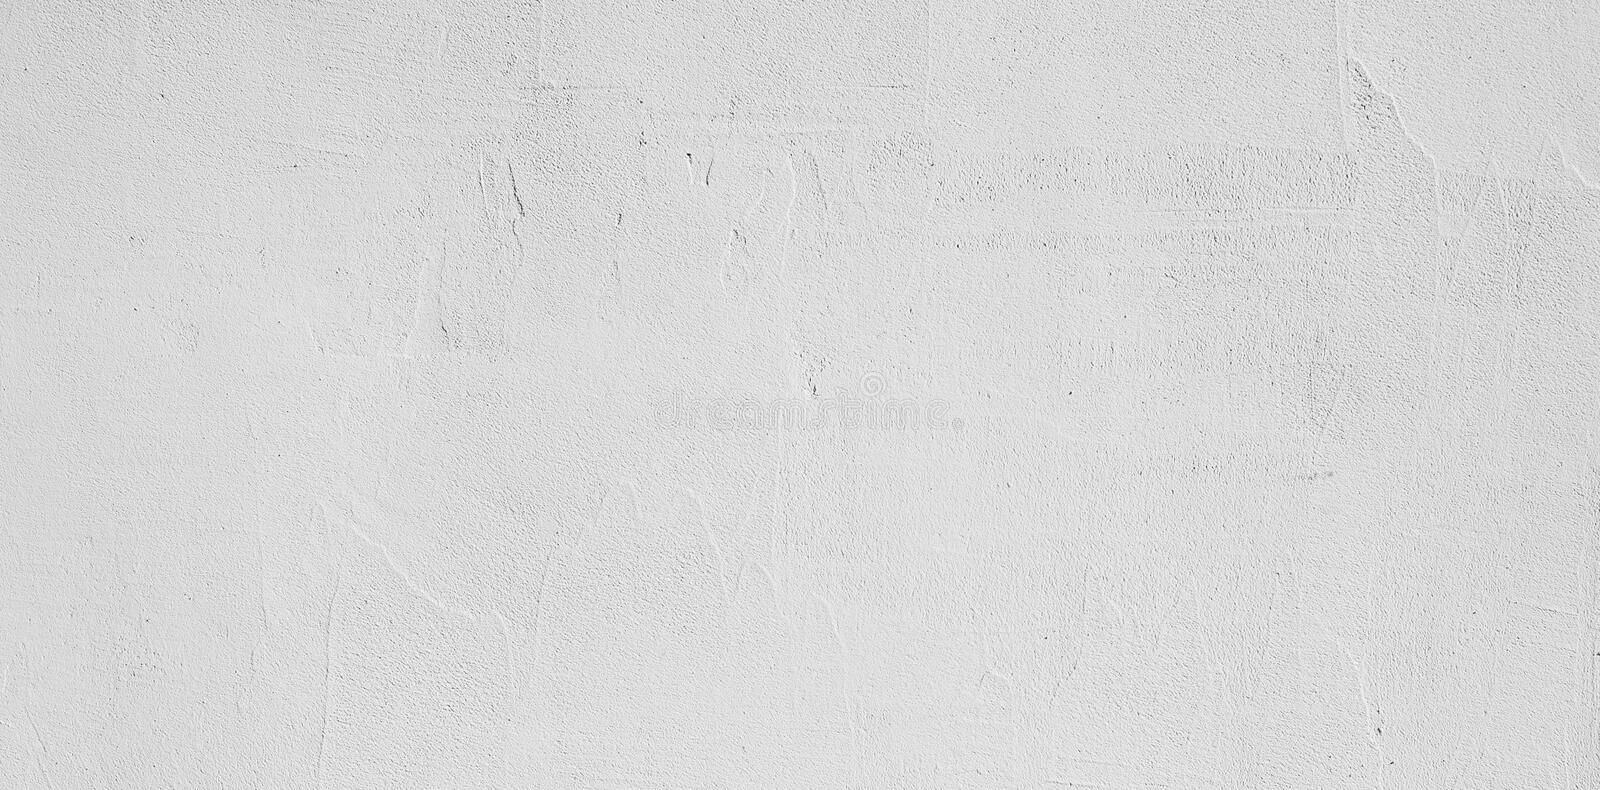 Abstract Grunge Decorative White Stucco Wall Background royalty free stock photography